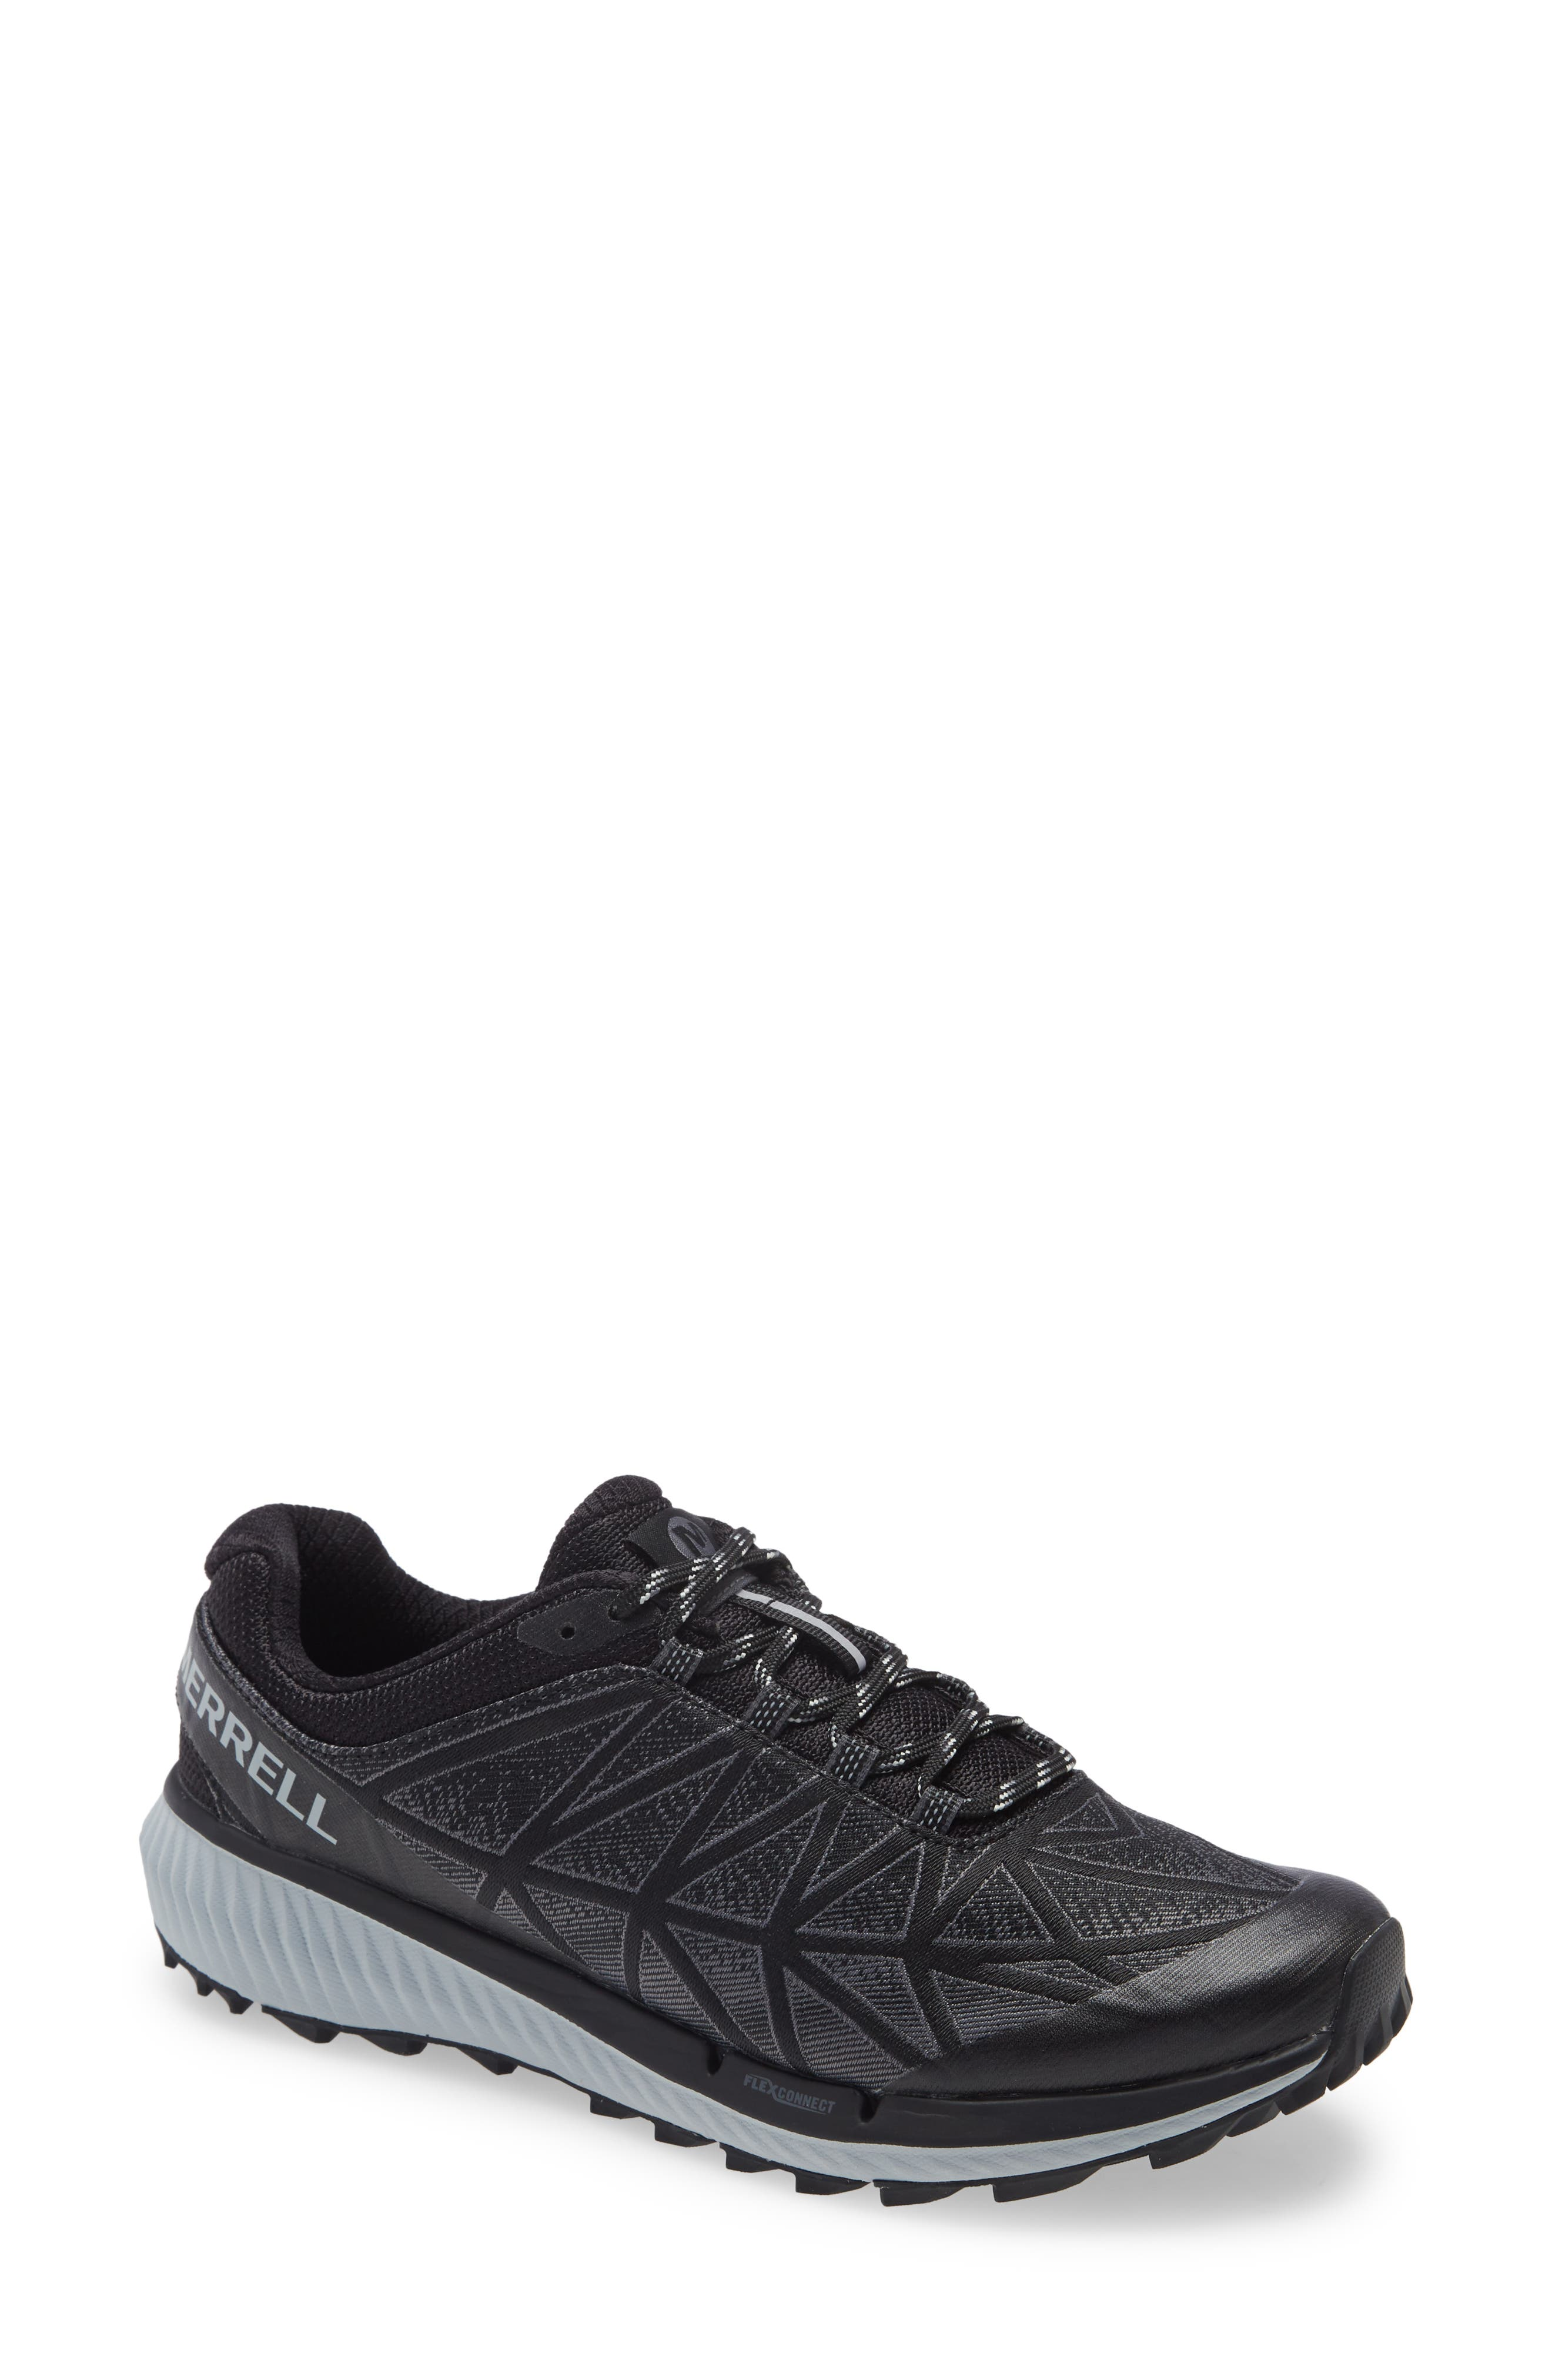 Agility Synthesis 2 Trail Running Shoe